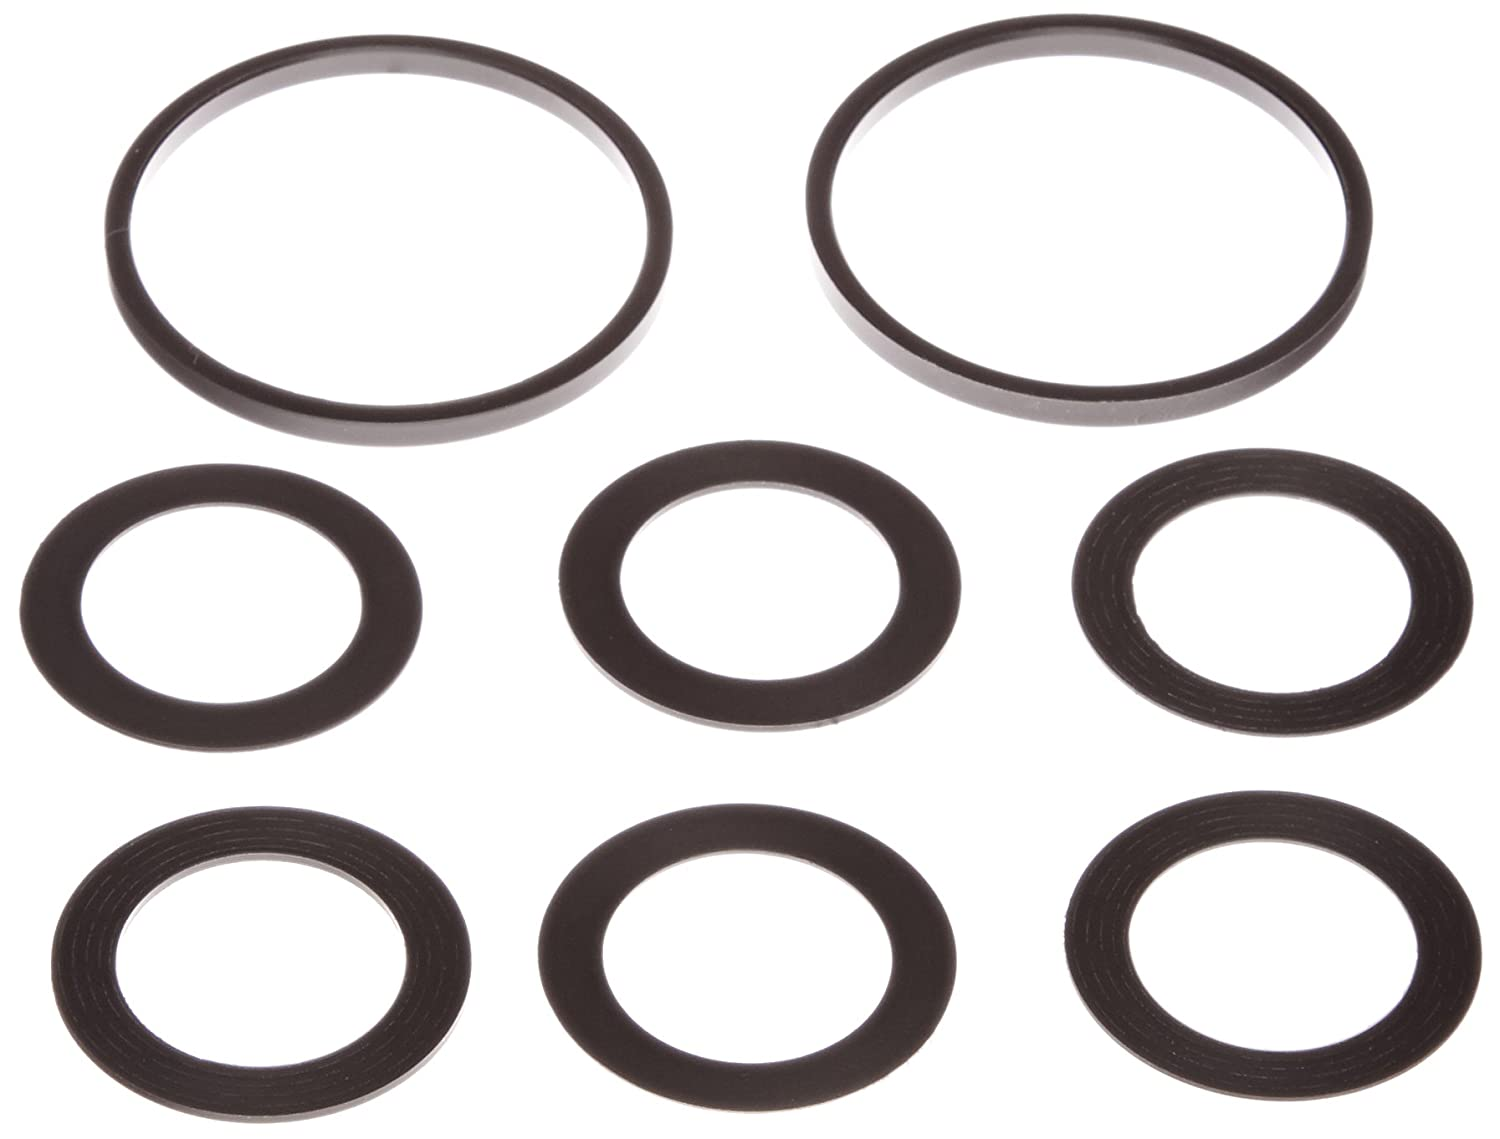 Wheels Manufacturing Bearing Cup Spacer for Specialized OSBB